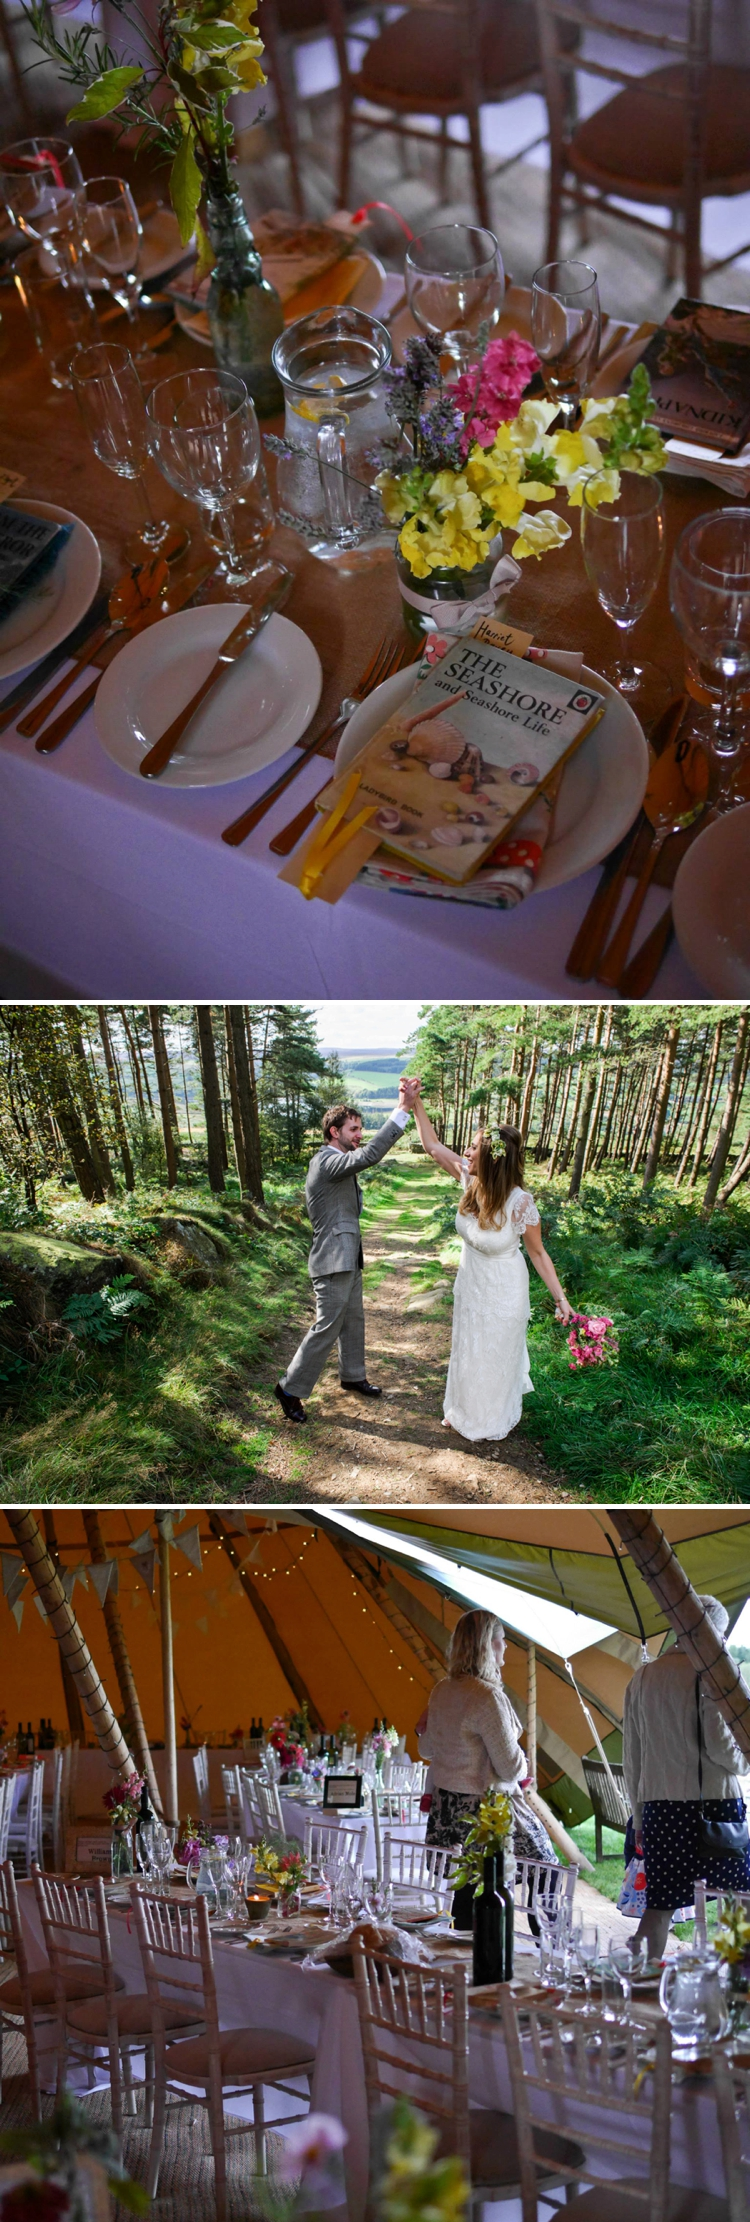 Outdoor-rustic-relaxed-Jewish-wedding-full-of-handmade-and-DIY-details-at-The-Bivouac-Swinton-Park-North-Yorkshire-UK_0113